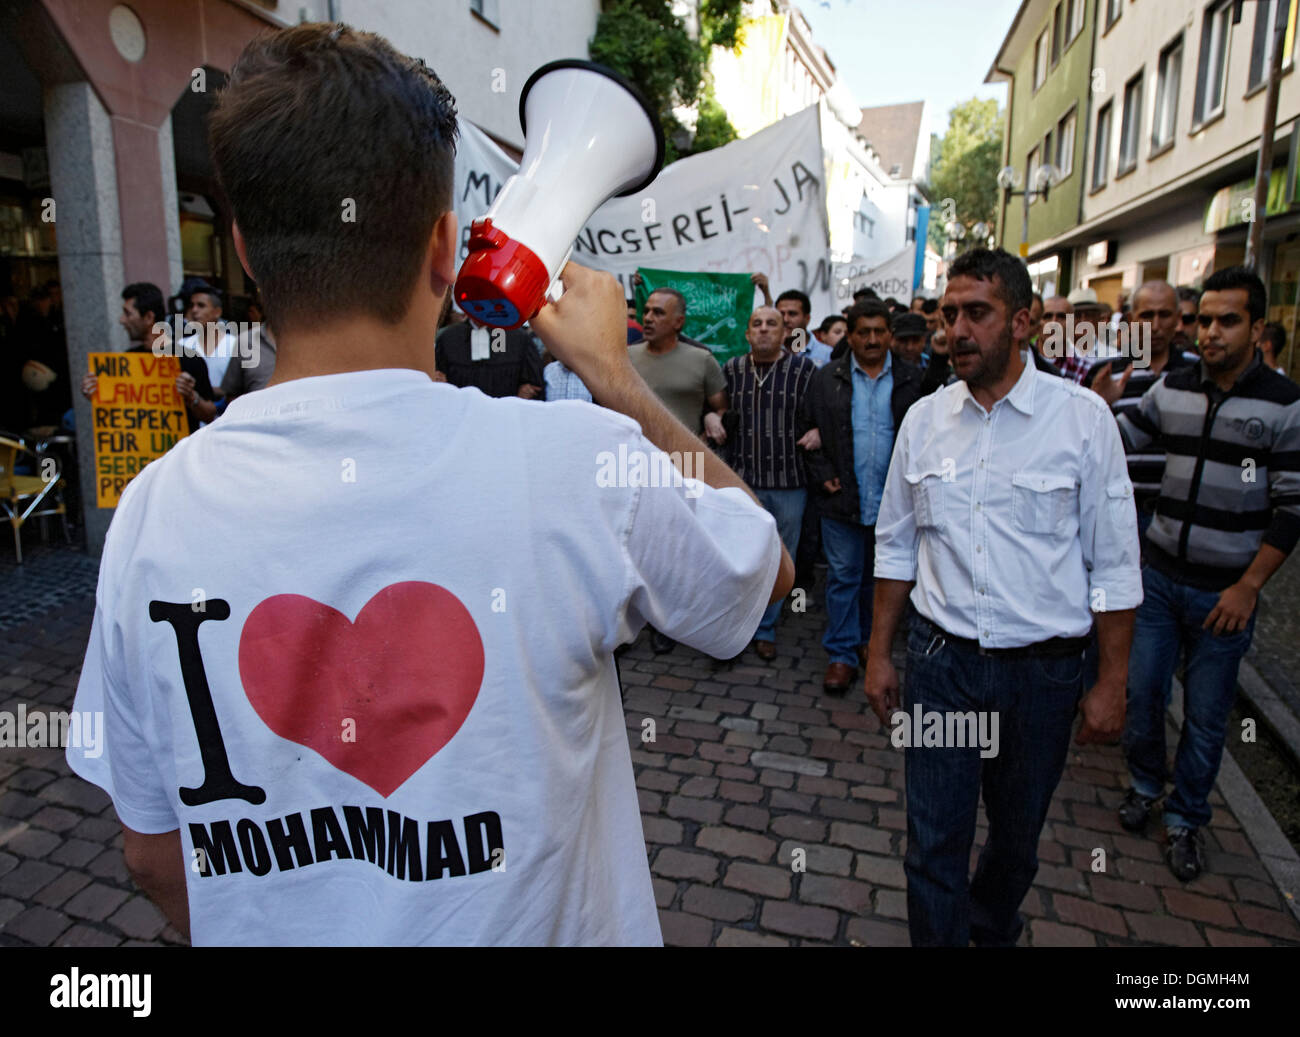 Muslims demonstrating peacefully against the Muhammad defamatory video in Freiburg, Baden-Wuerttemberg - Stock Image